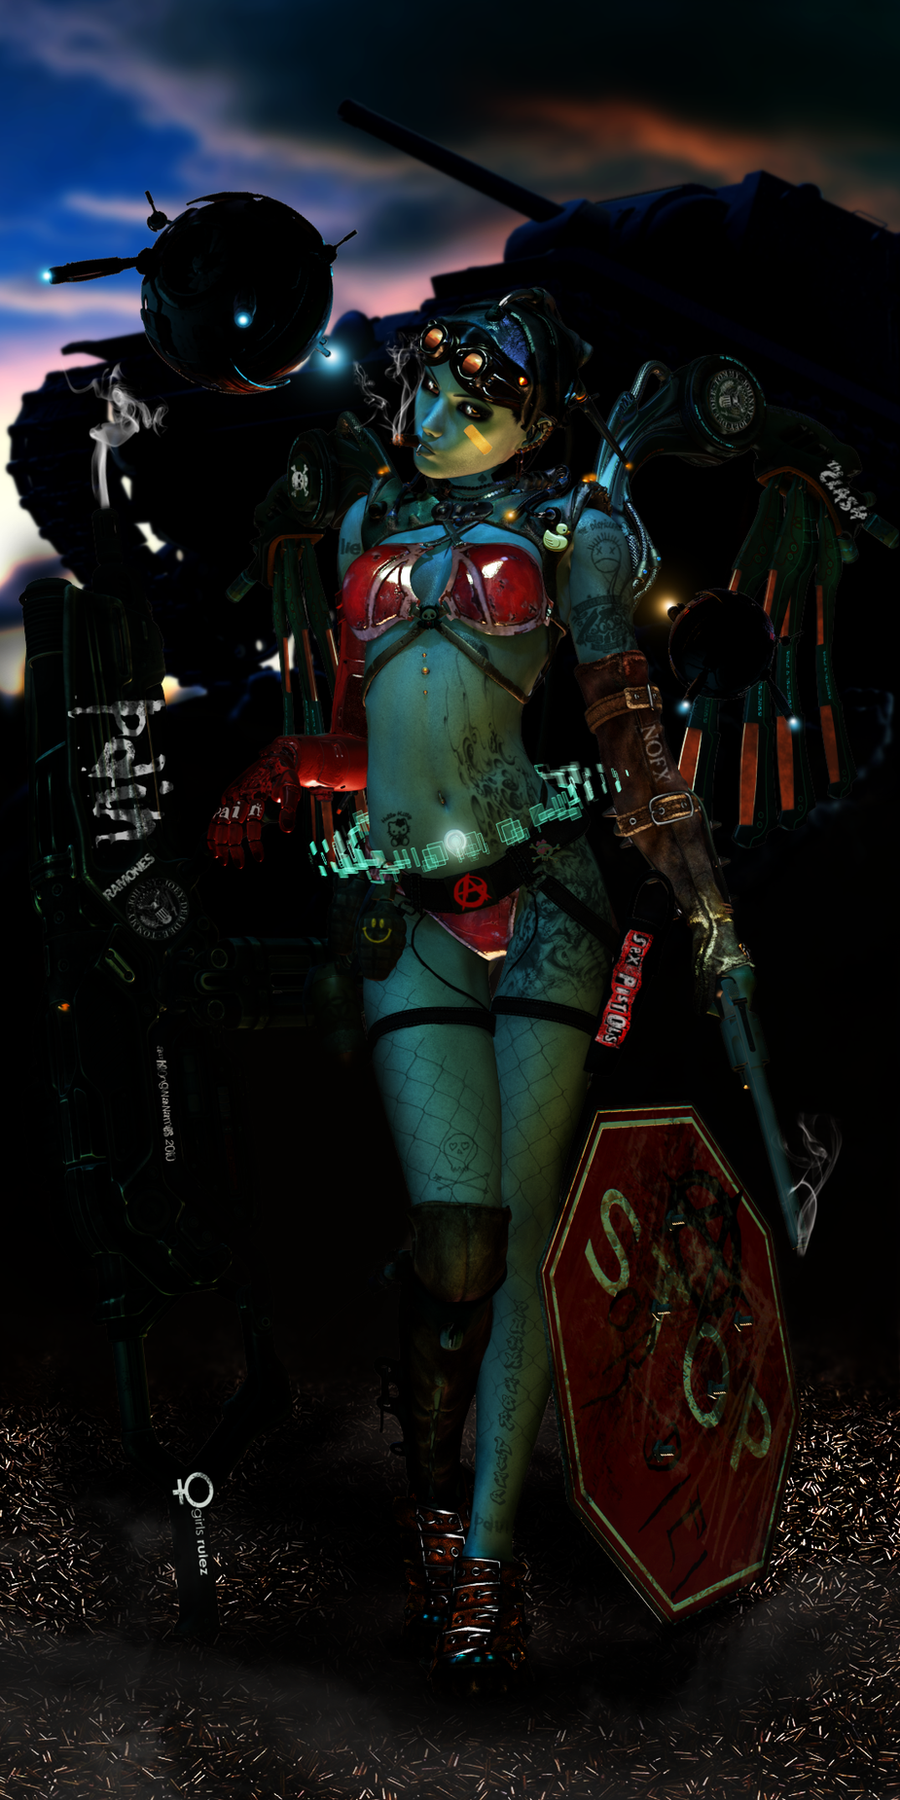 TANK GiRL - CyberPunked by alltheoriginalnames